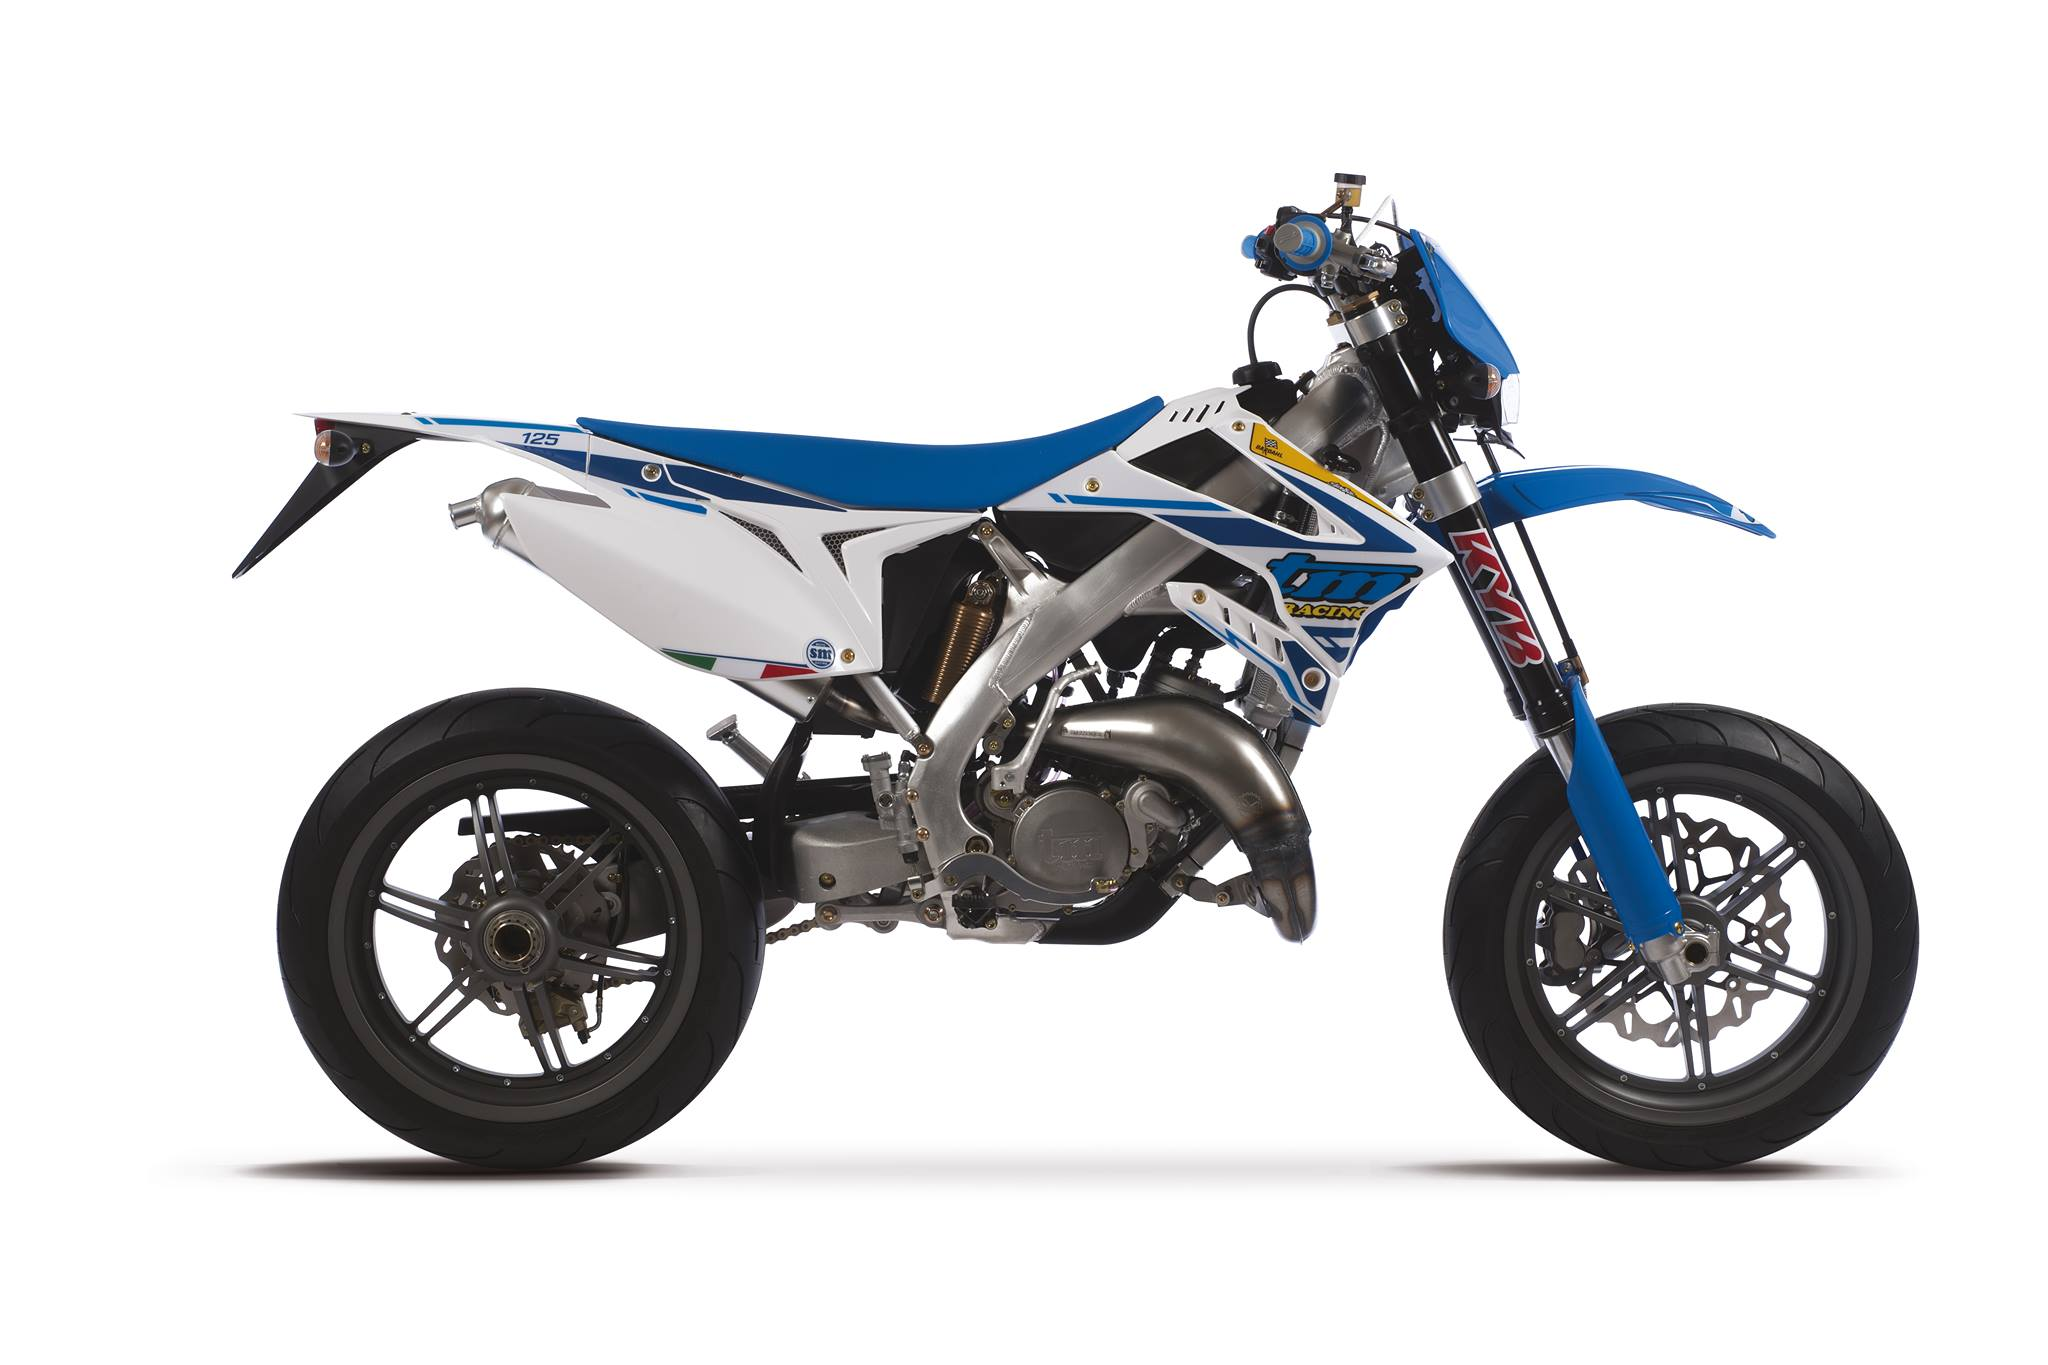 Tm Dirt Bikes >> Tm Racing The Premium Motorcycle Brand You Should Know About